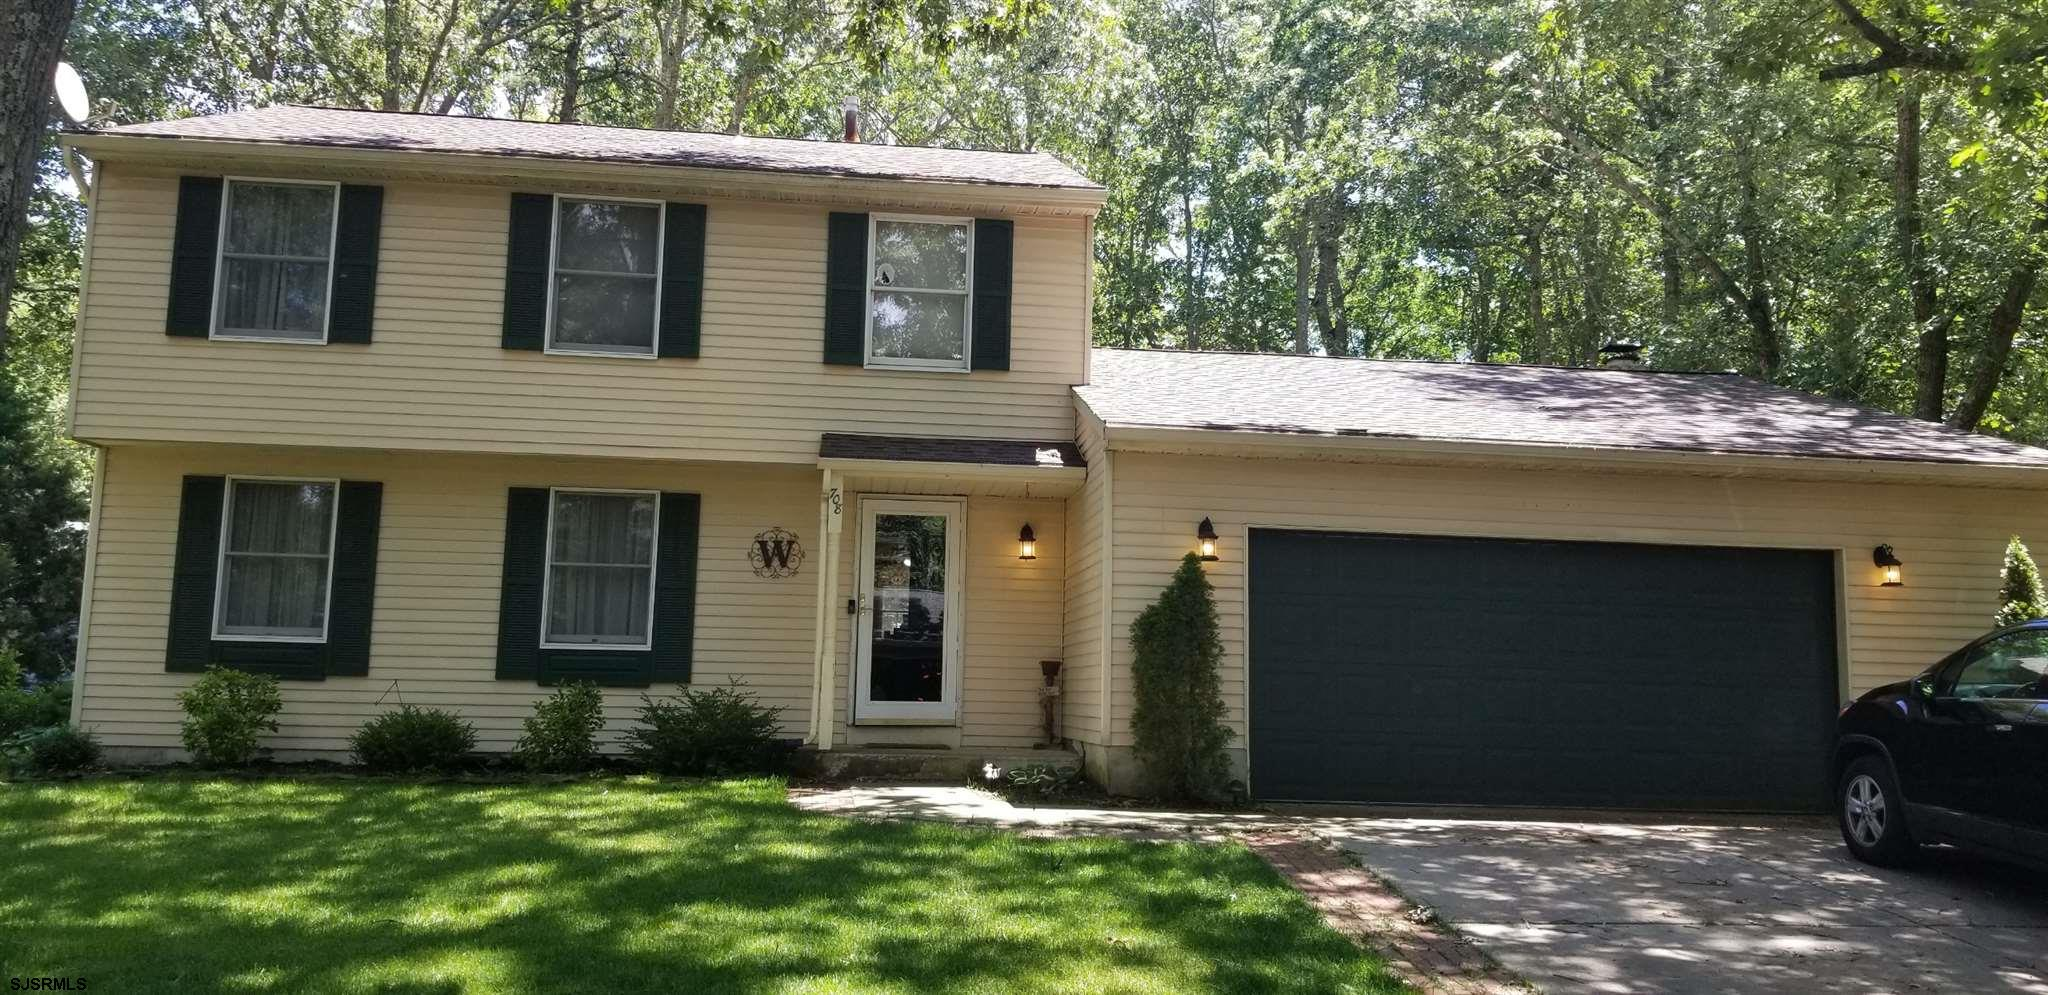 **NEW LISTING** We hope you like entertaining because your friends and family will never want to lea